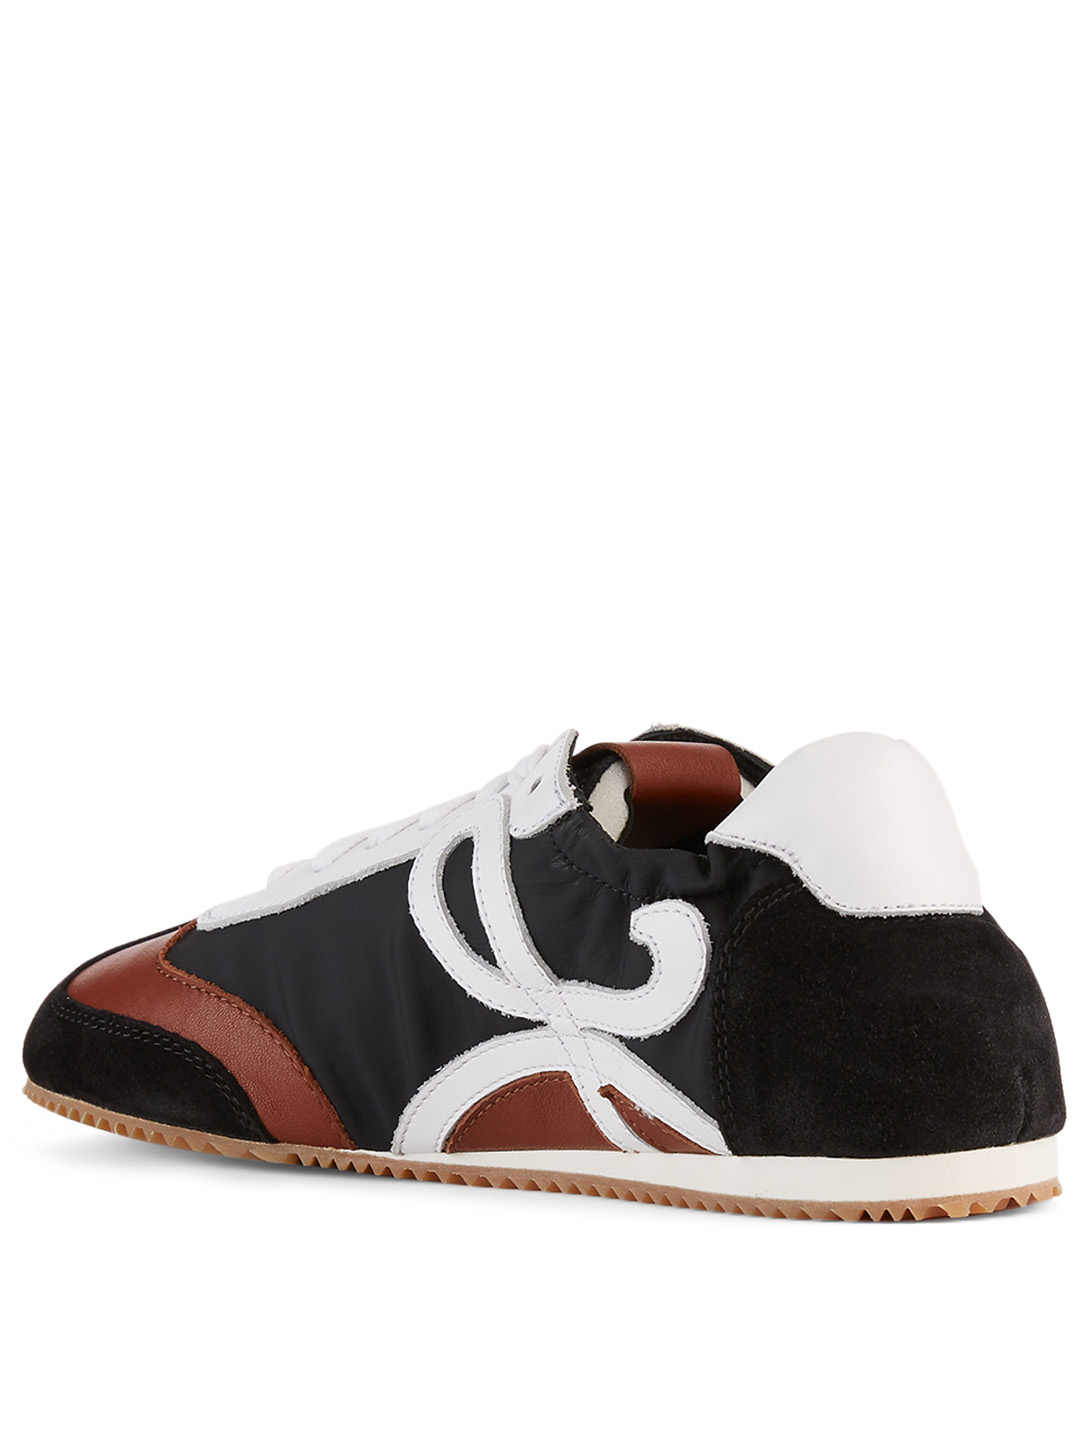 LOEWE Leather And Nylon Ballet Runner Sneakers Women's Black